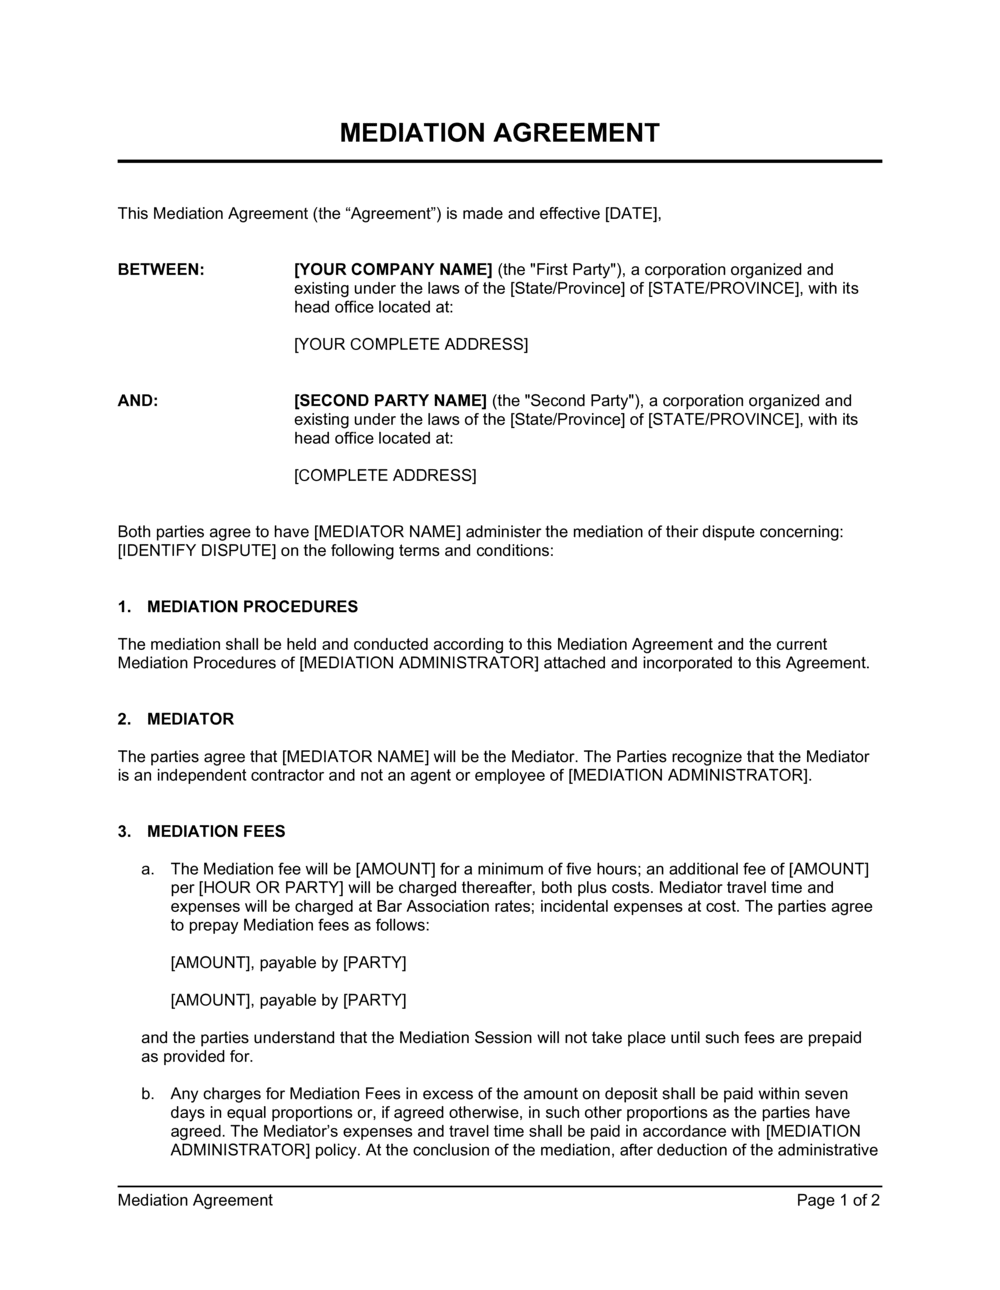 Business-in-a-Box's Mediation Agreement Short Template